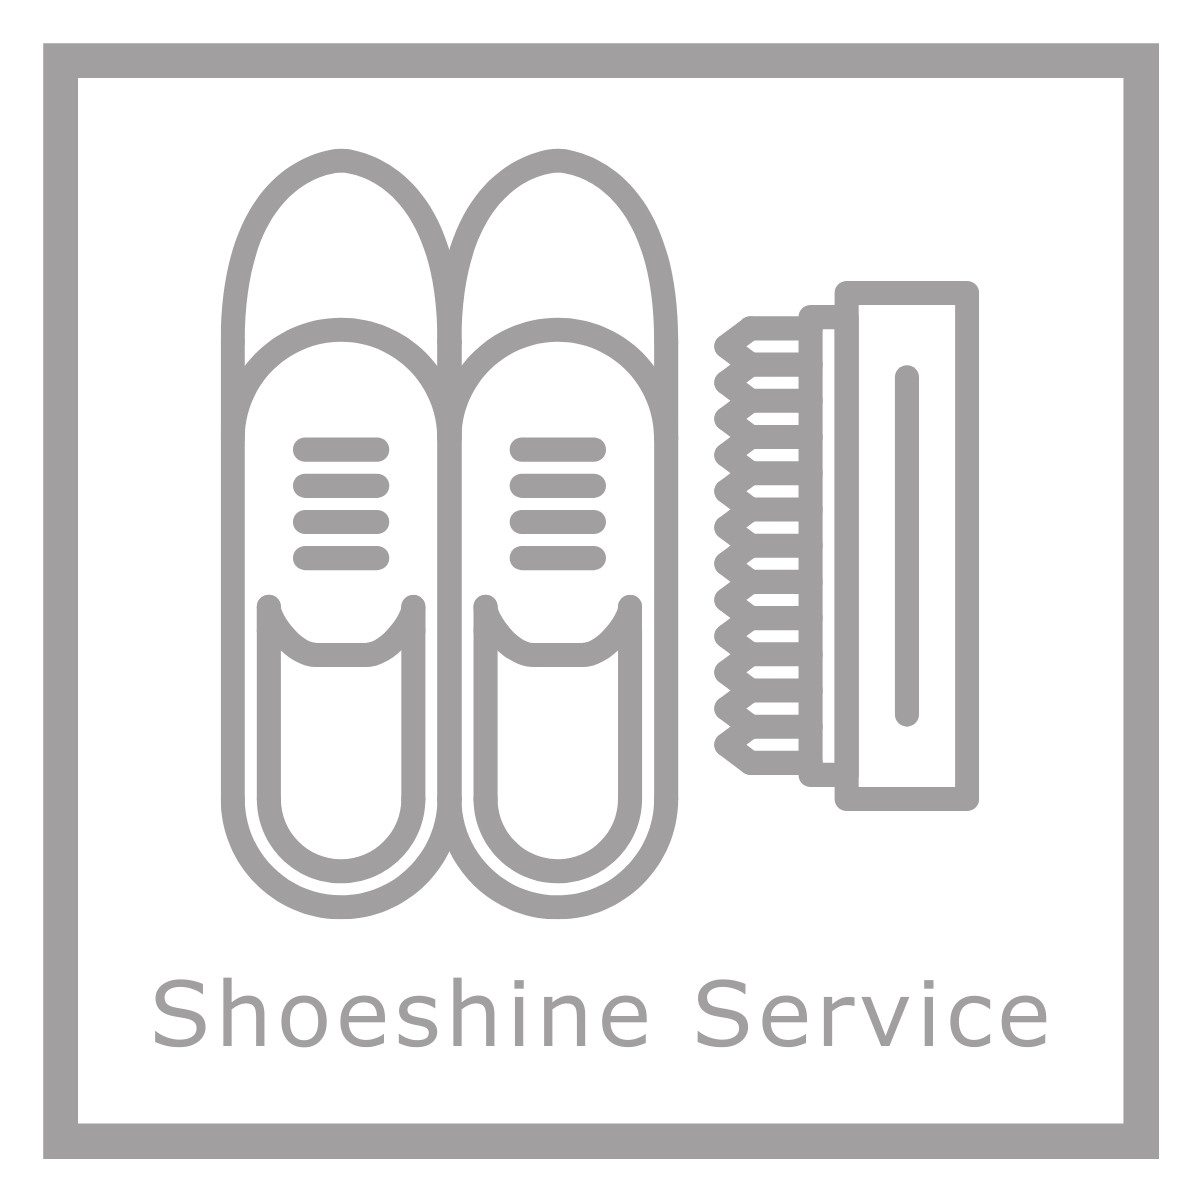 Shoeshine Services at The Water Tower Lounge- Amenity Center Concierge Services